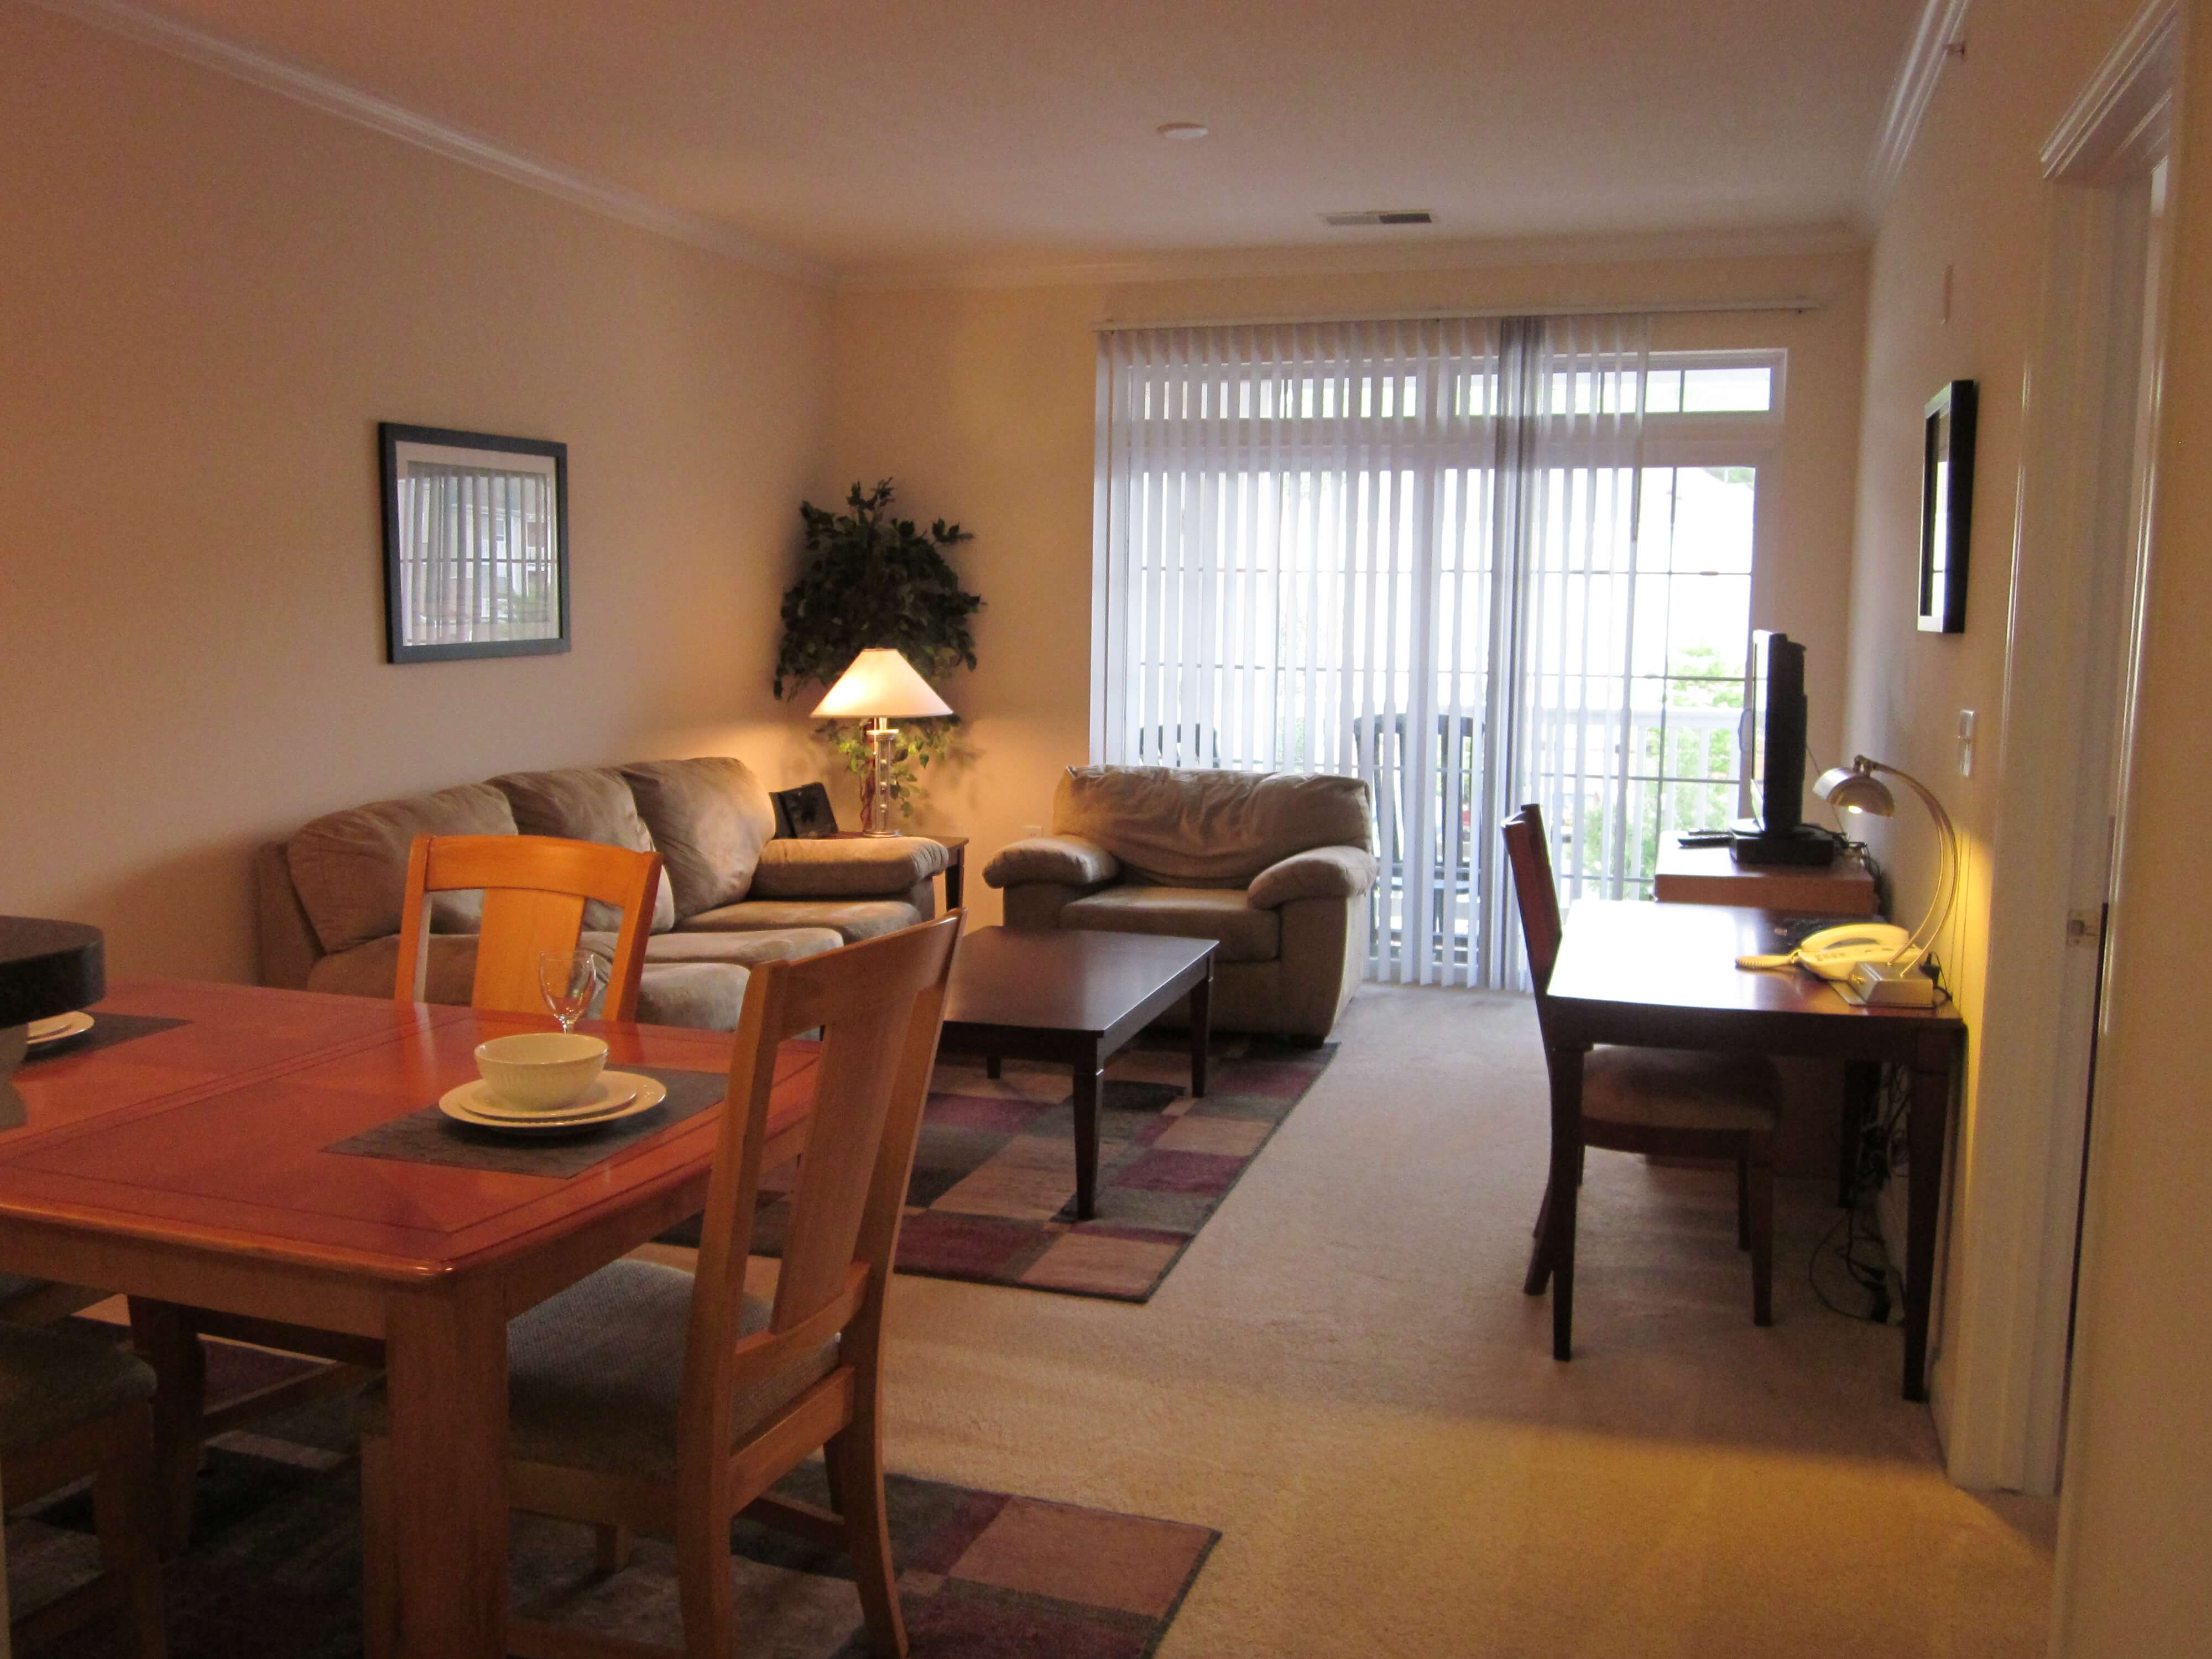 image 4 furnished 1 bedroom Apartment for rent in Princeton, Mercer County